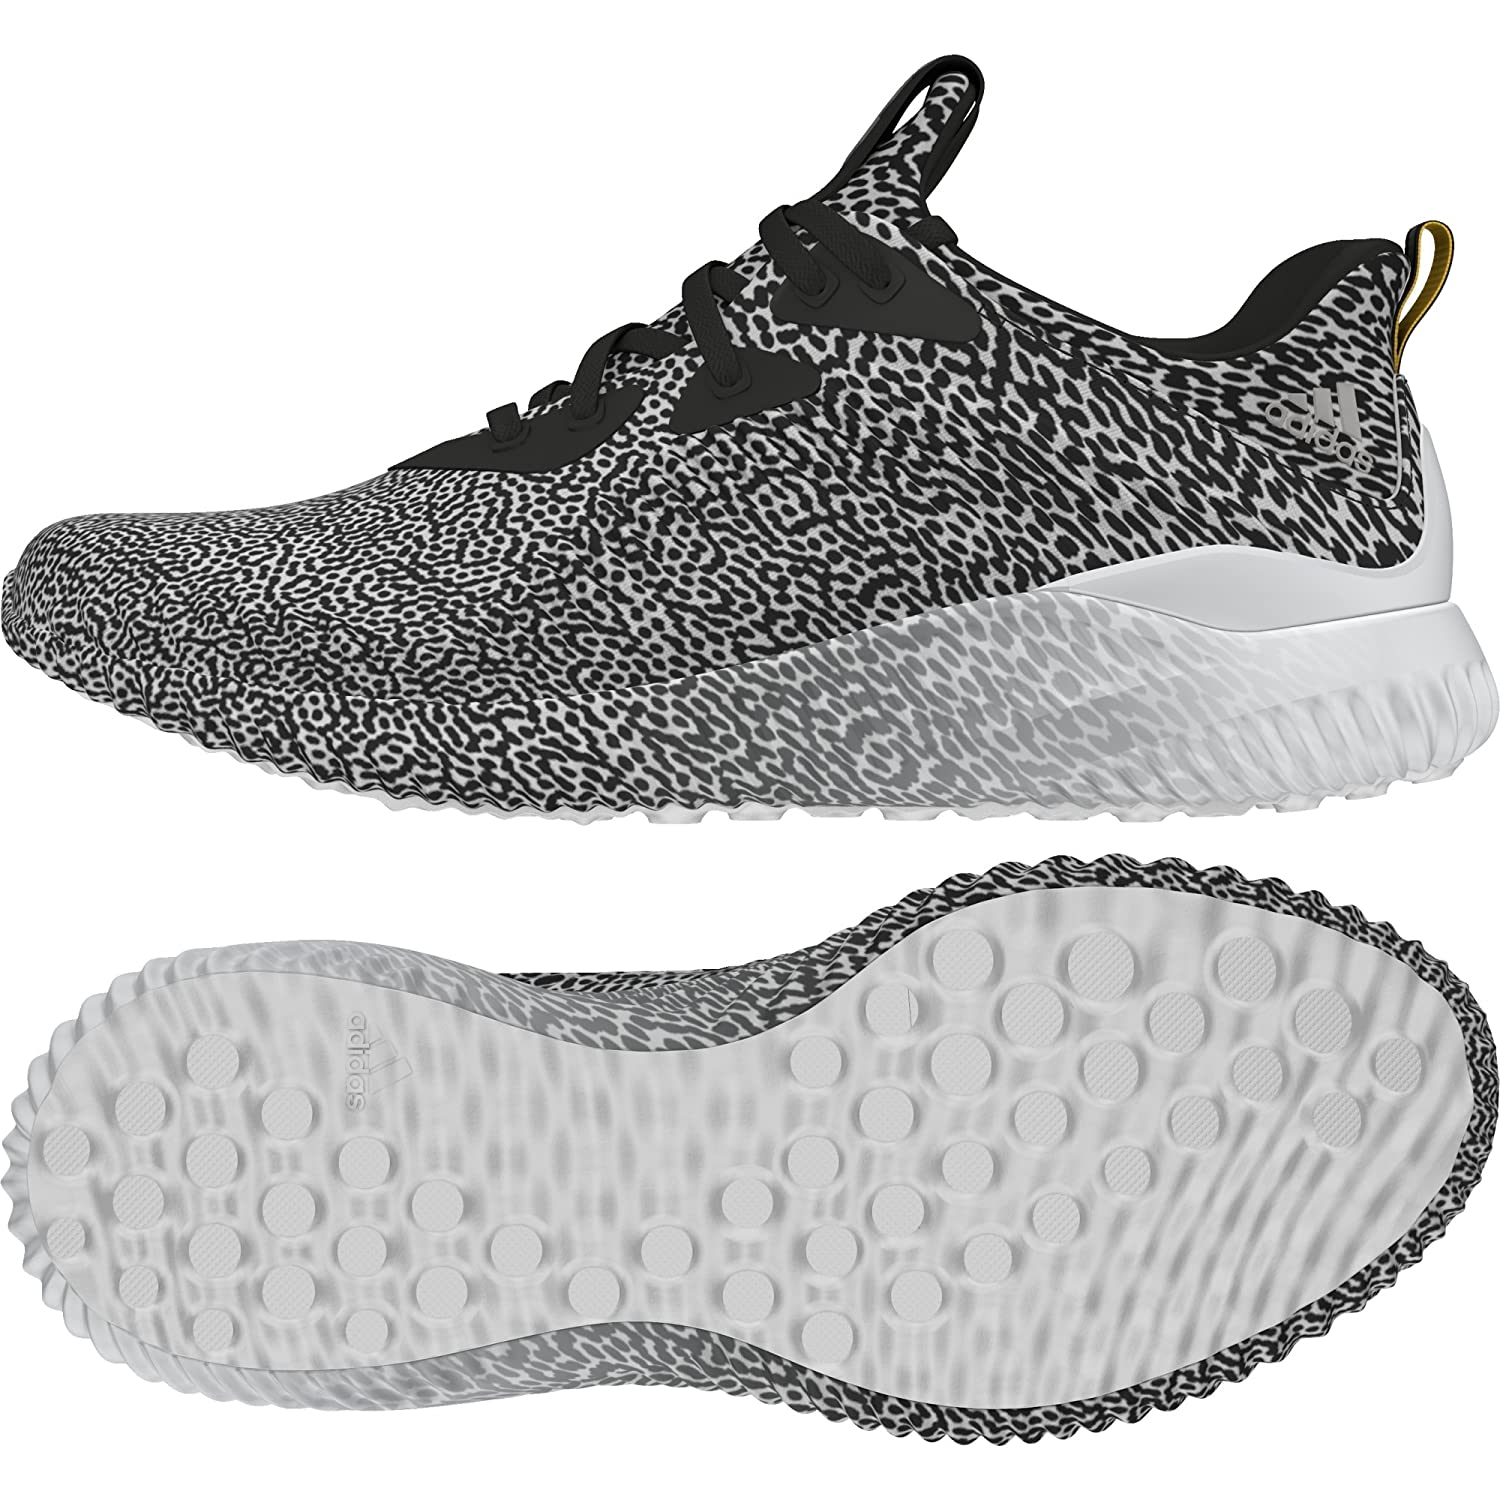 9aa0aaa4867a8 adidas Men s Alphabounce M Aramis Running Shoes  Amazon.co.uk  Shoes   Bags